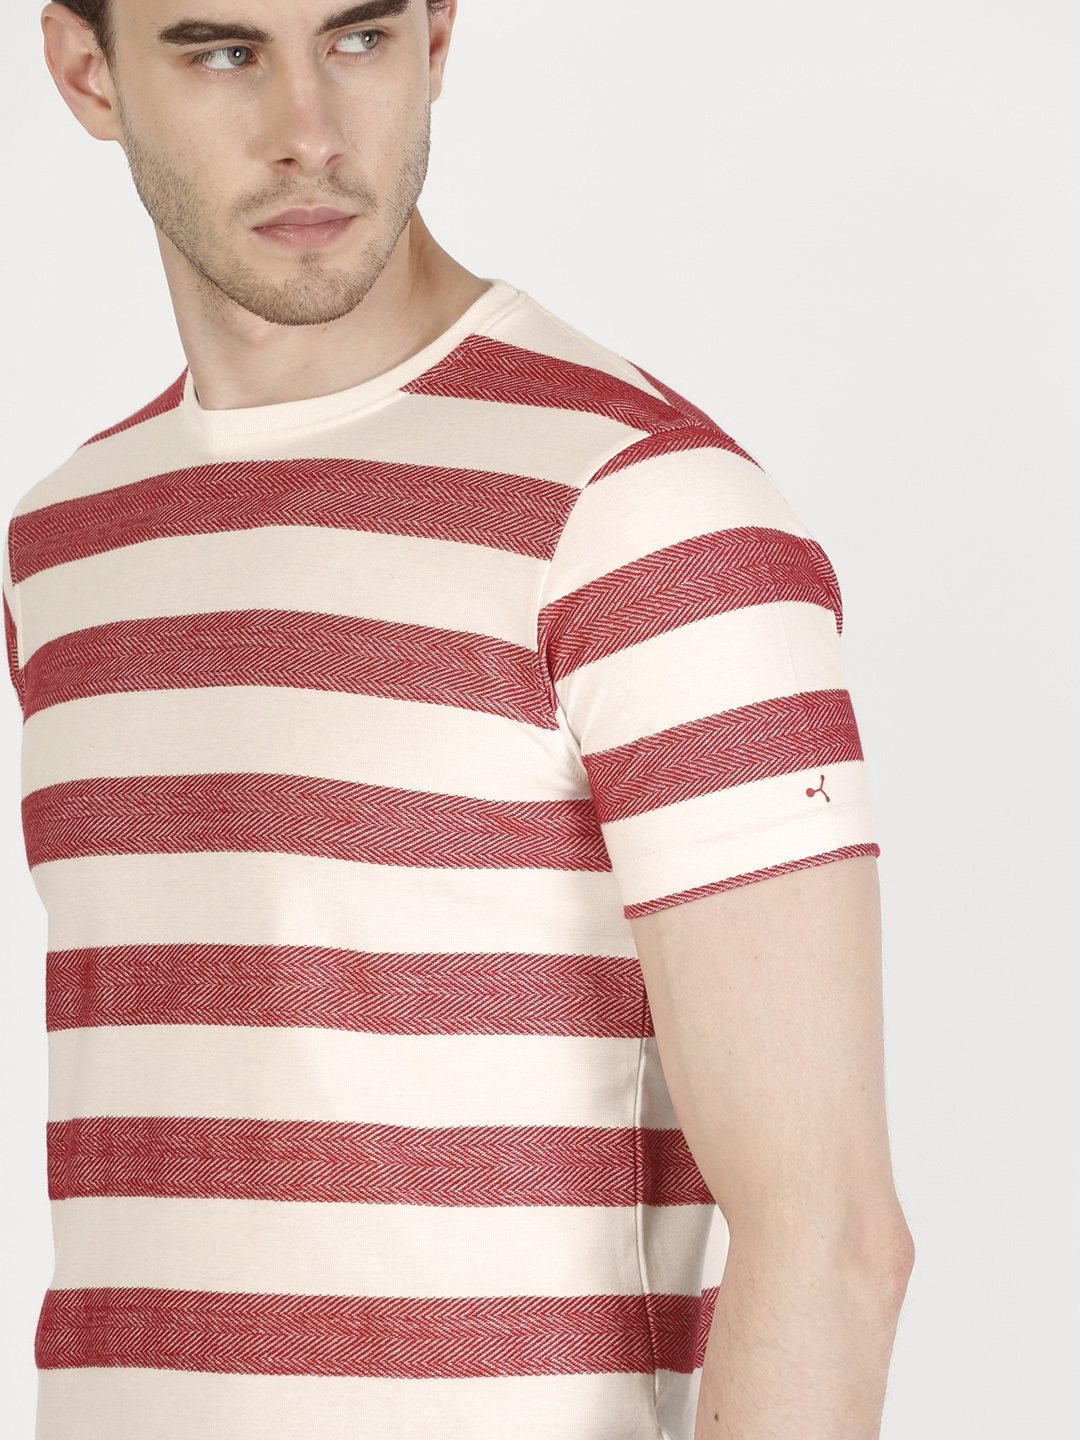 0e55f00960 Buy Ether Men White & Red Striped Round Neck T Shirt - Tshirts for ...